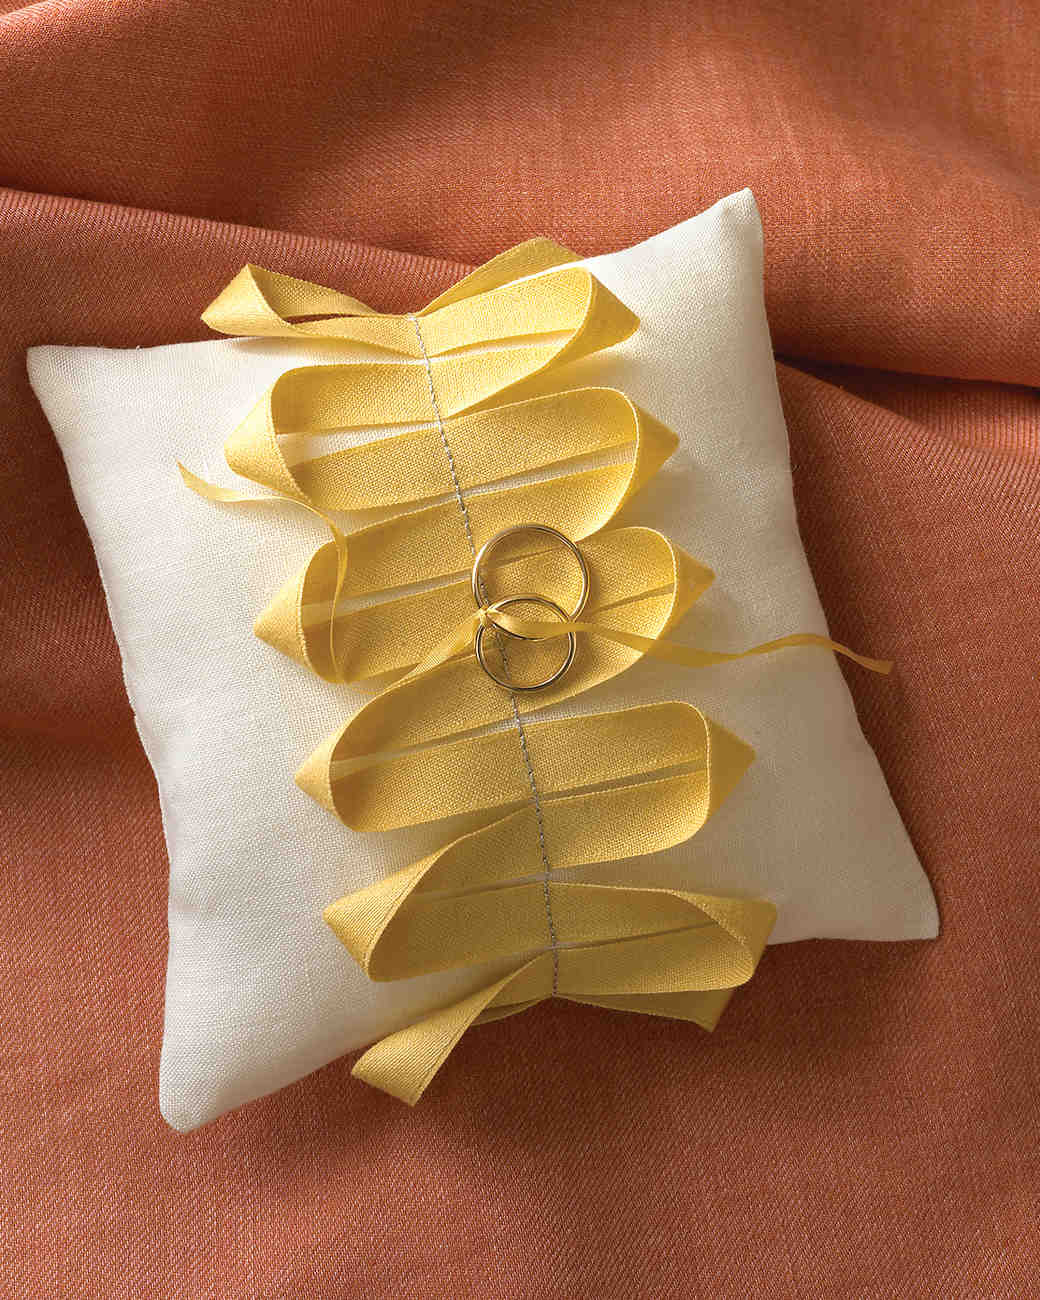 Ribbon-Embellished Ring Pillow & Ribbon Ideas for Your Wedding That Are Fit to Be Tied | Martha ... pillowsntoast.com